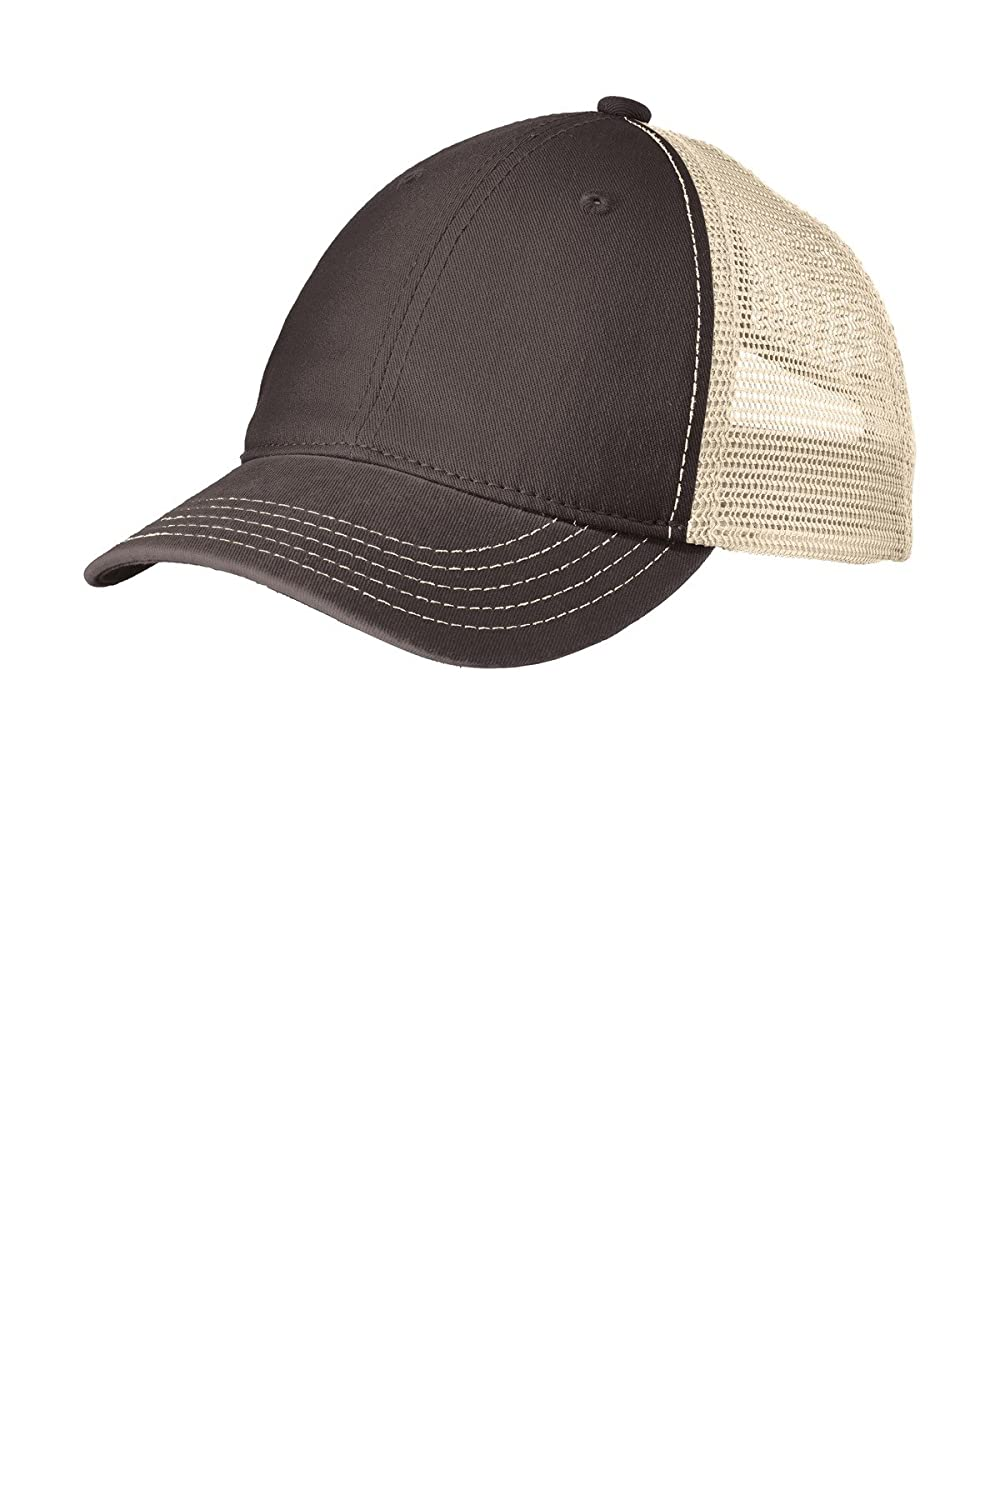 6b1a0aa8cf5 District Super Soft Mesh Back Cap. DT630 Black  Khaki OSFA at Amazon Men s  Clothing store